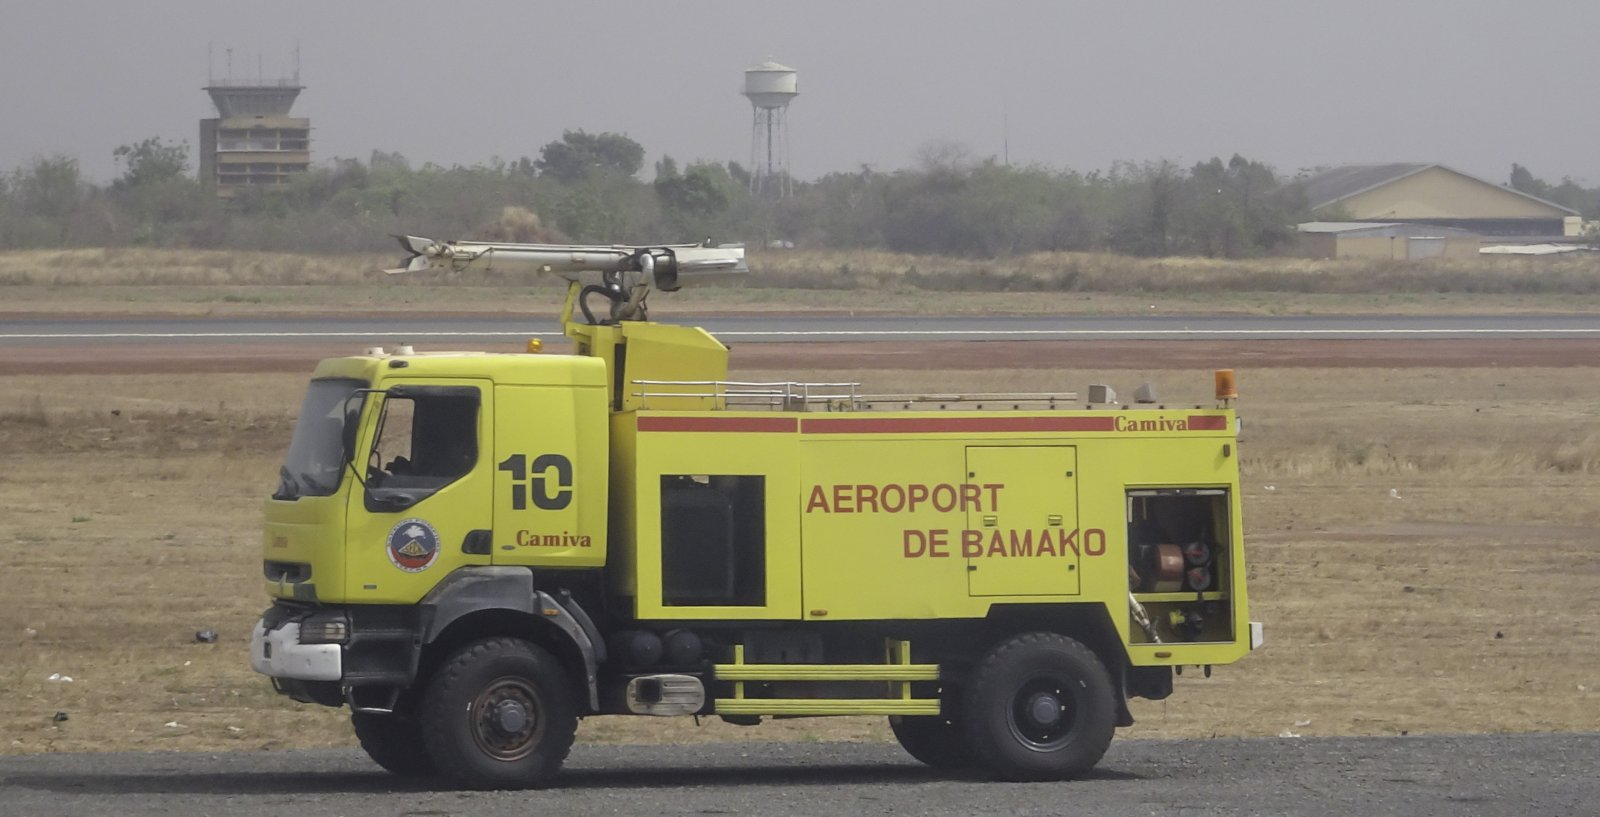 Mali - Bamako Modibo Keita International Airport (BKO)